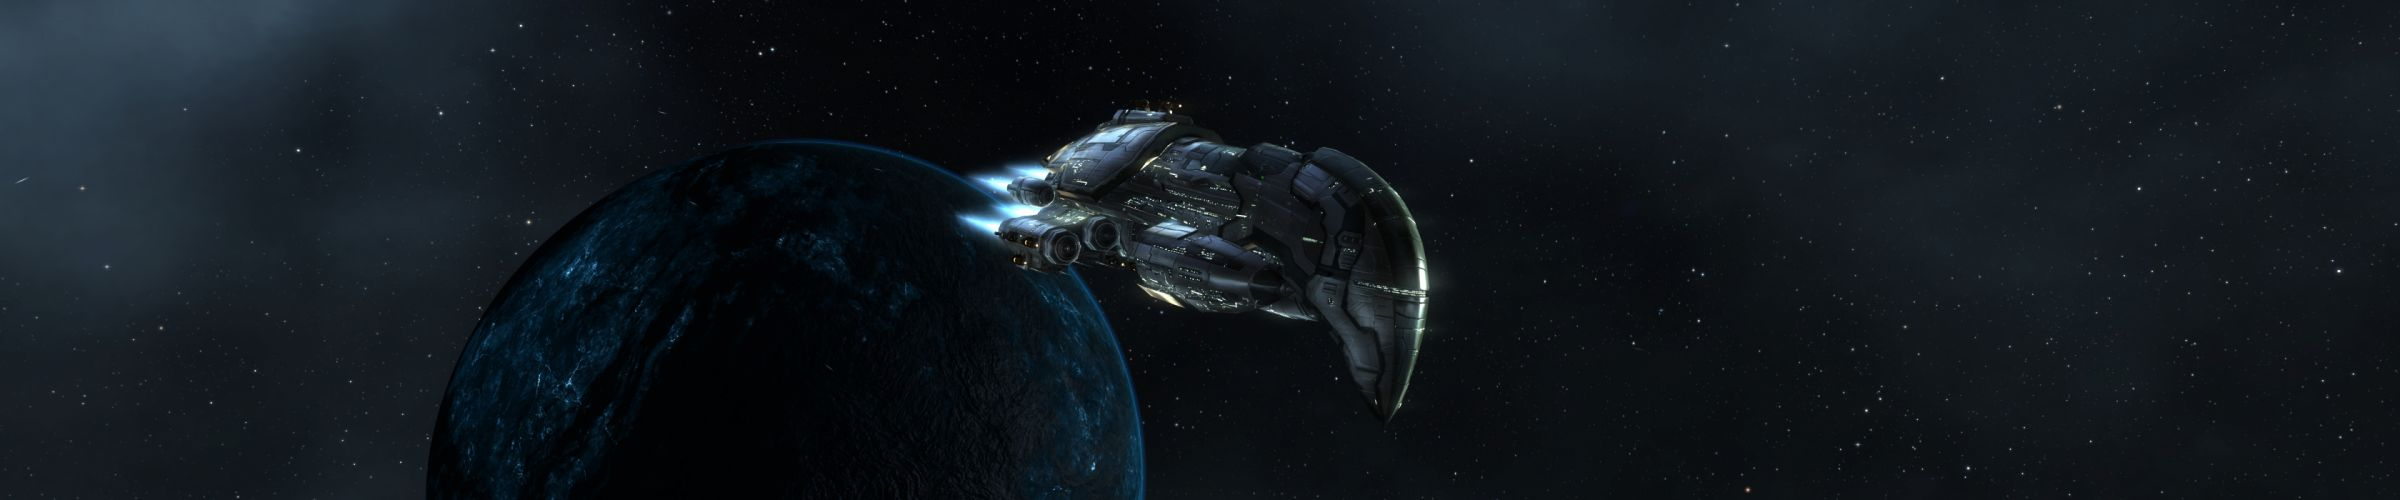 outer space planets spaceships vehicles wallpaper